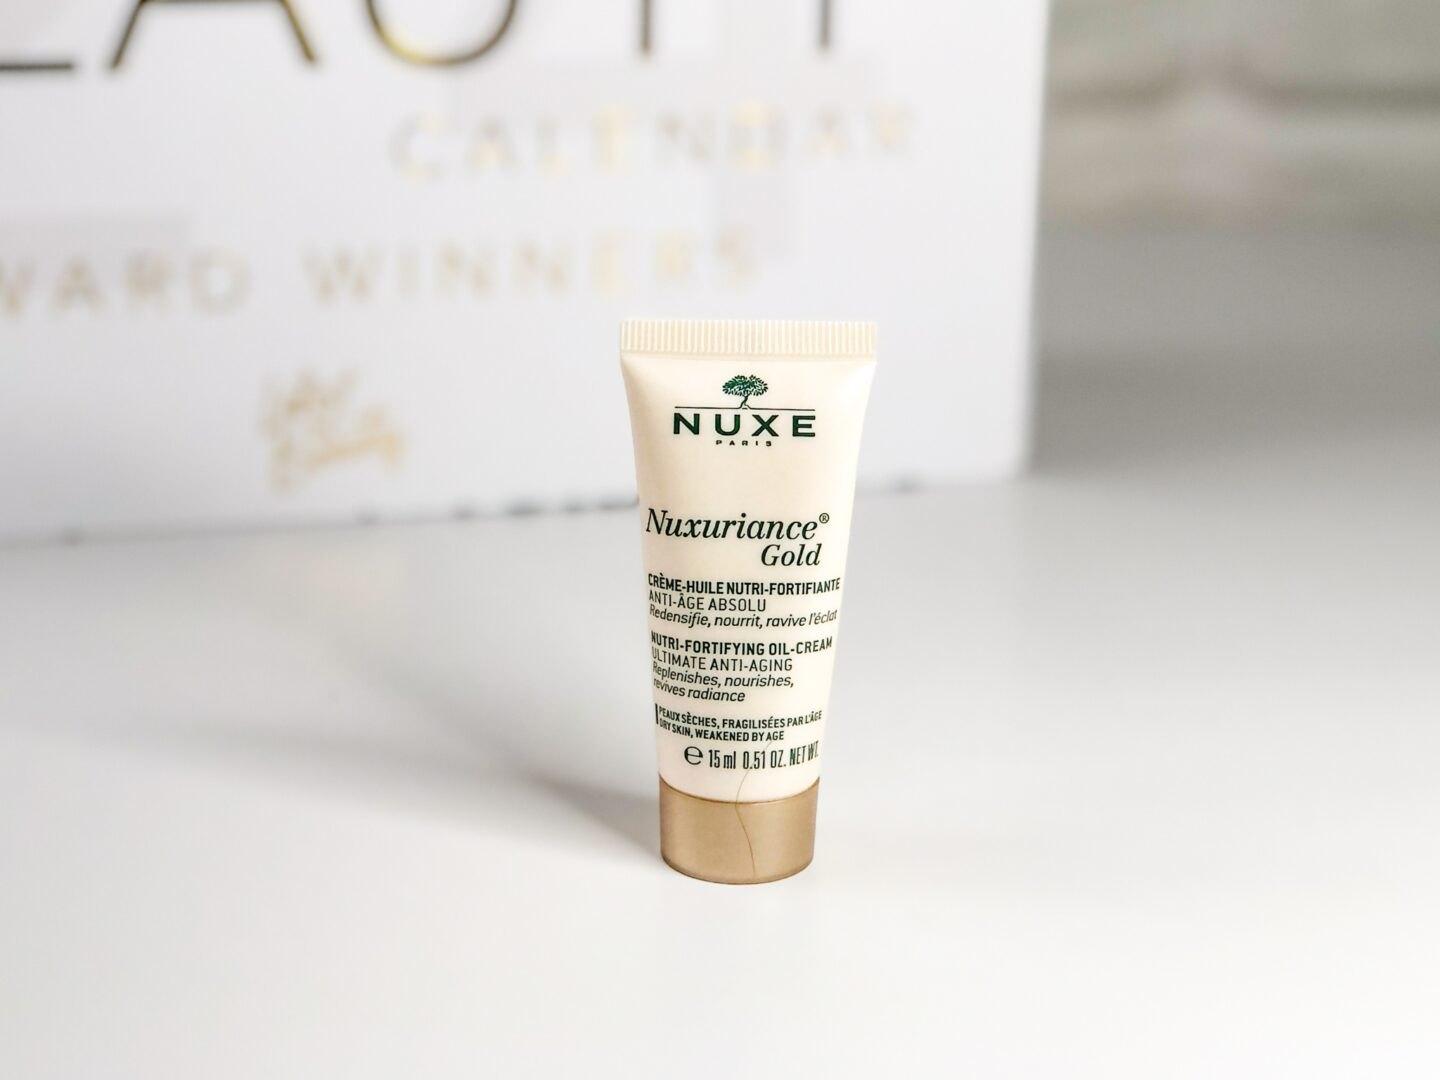 Nuxe Nuxuriance Gold Oil Cream - Beauty Calendar: The Award Winners